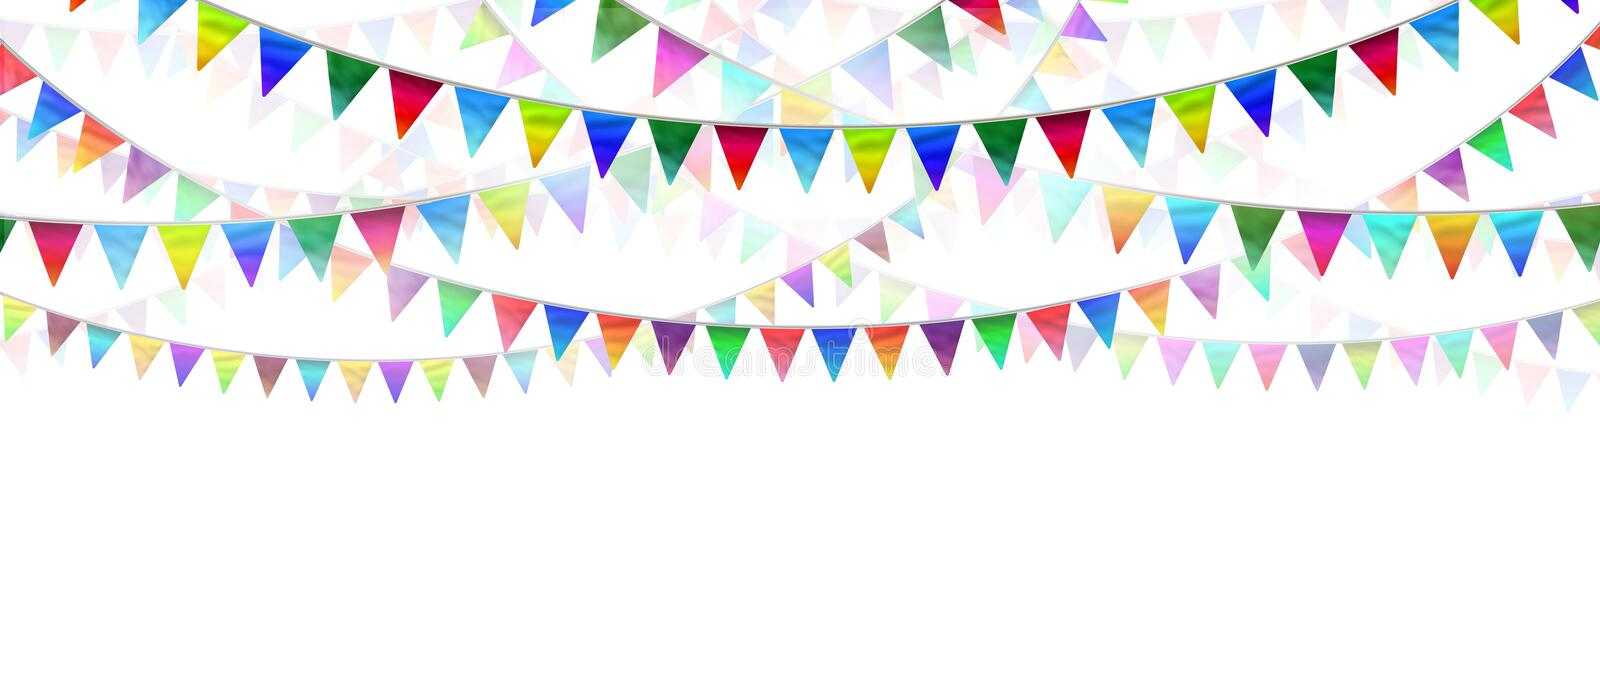 Bunting Flags. On a white background as an advertising and marketing icon of happy celebration for a birthday or special event as a horizontal design element royalty free illustration